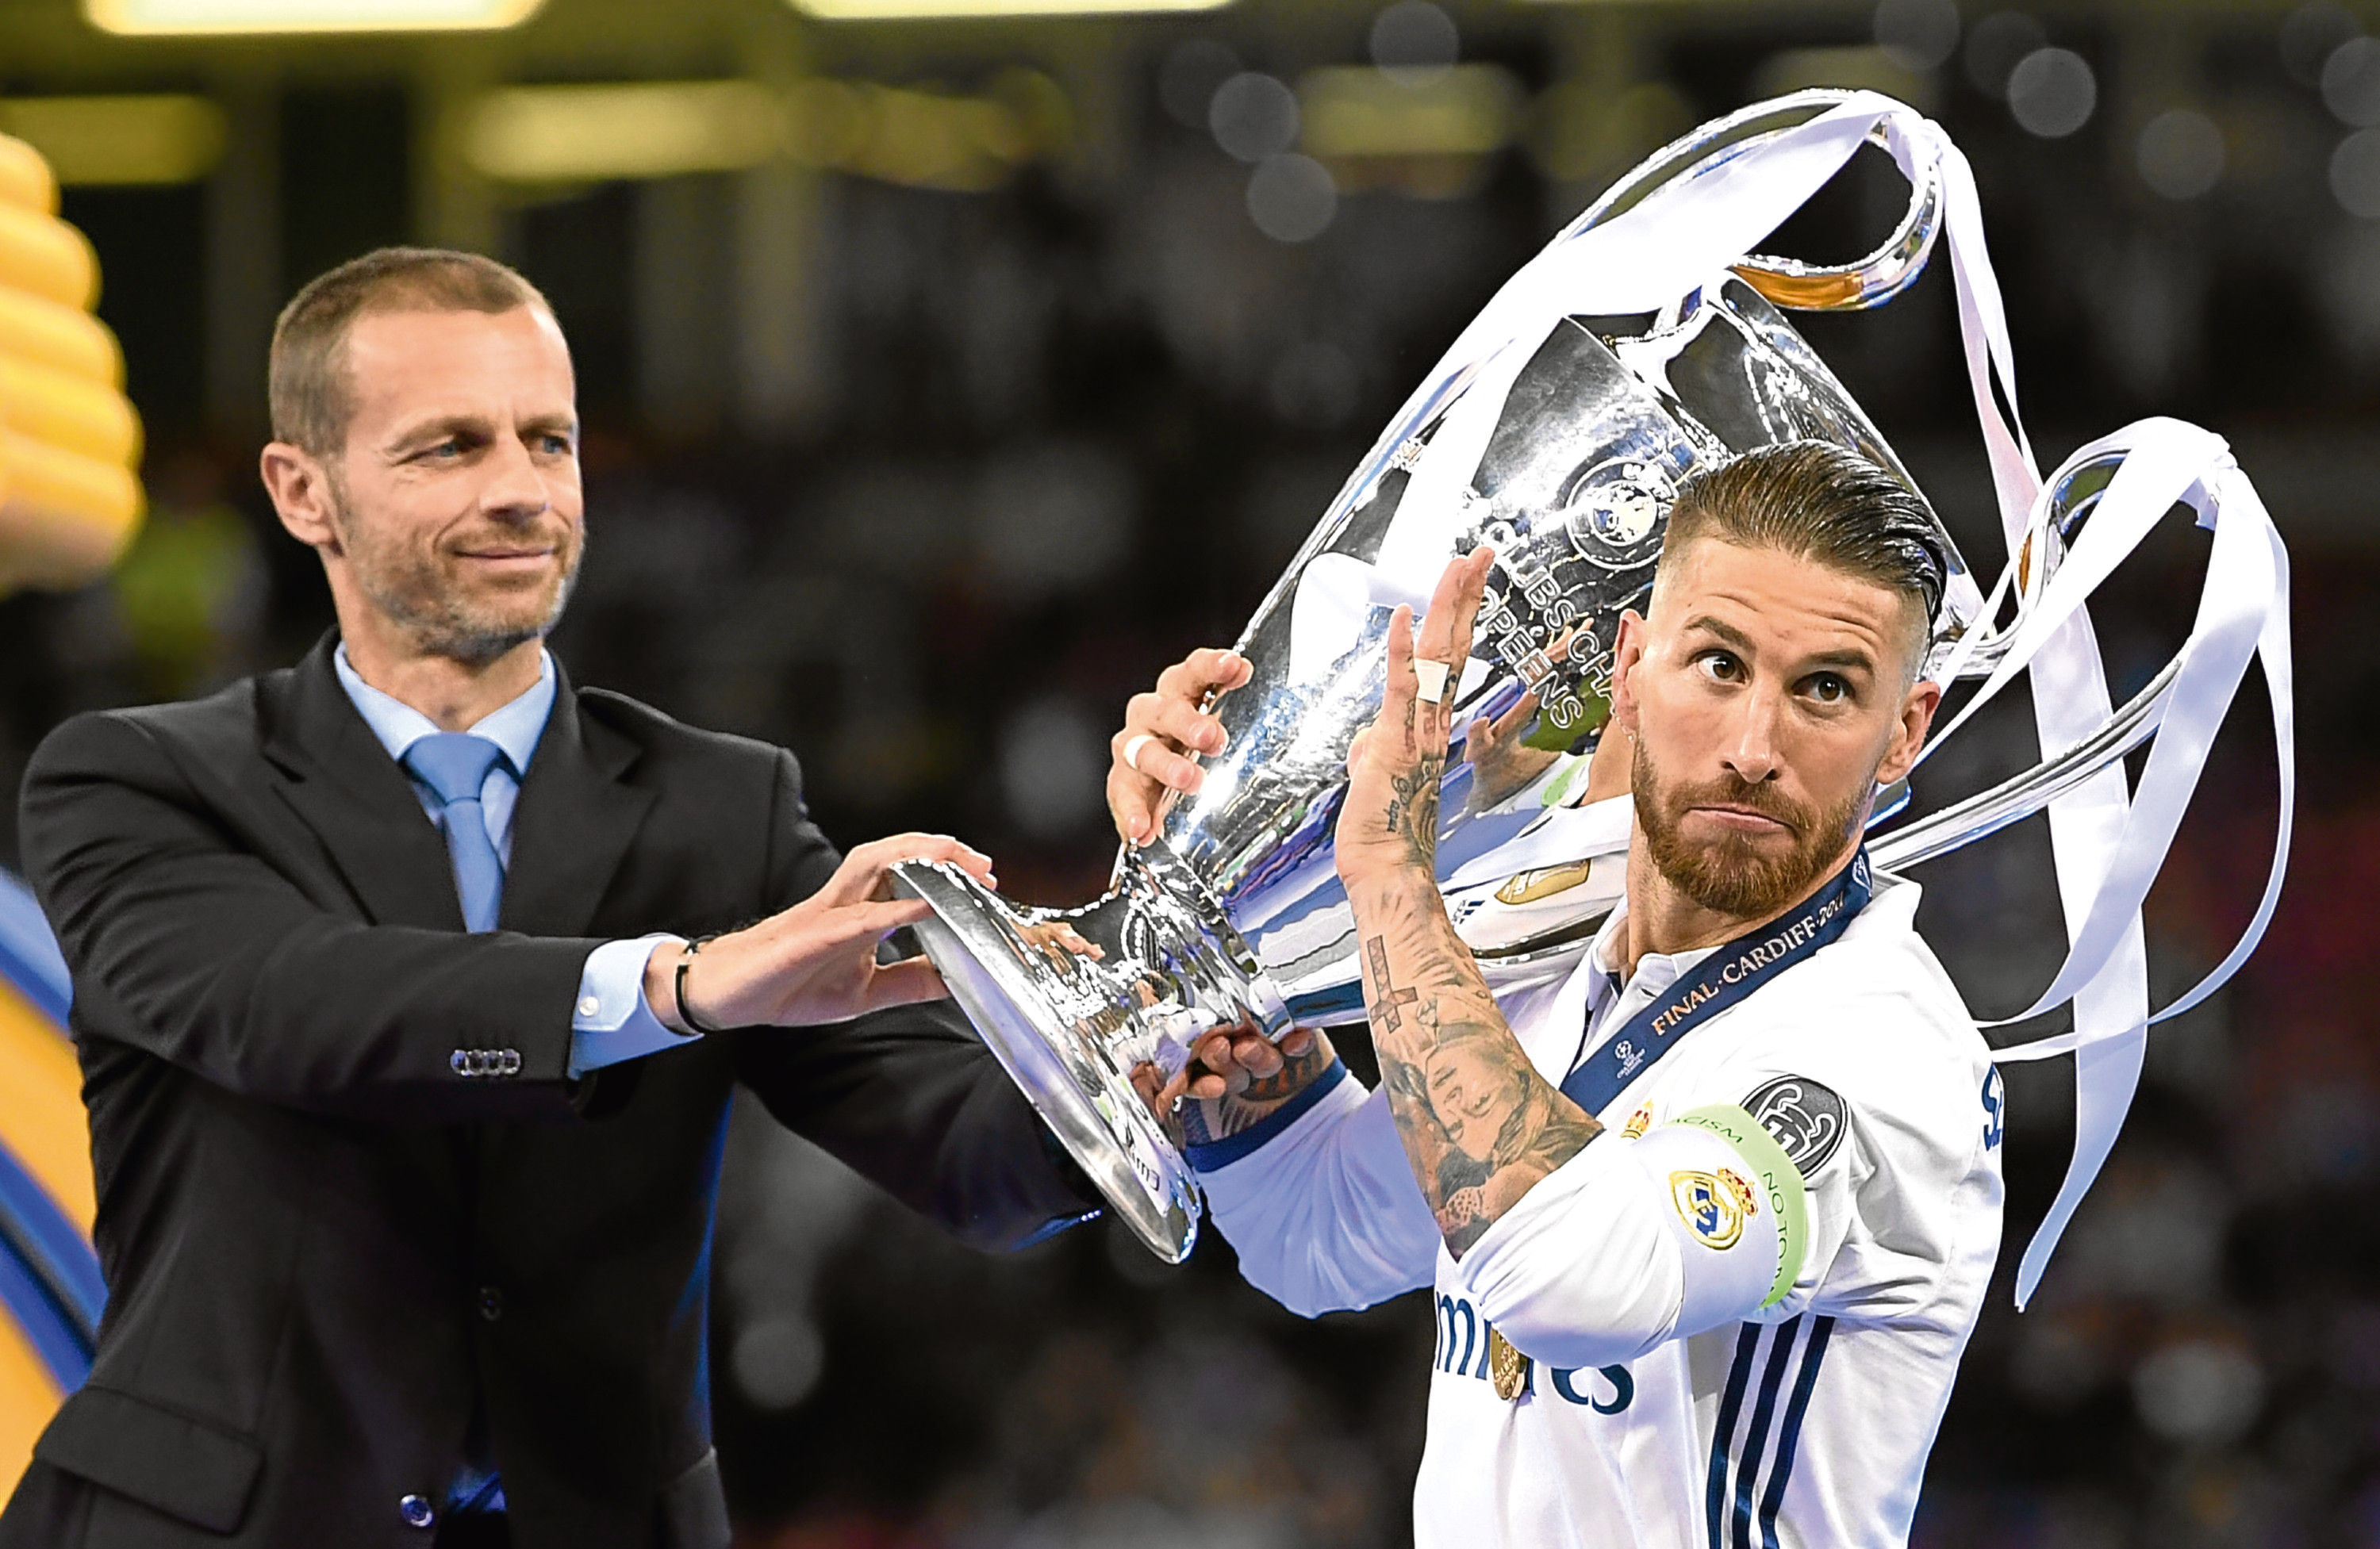 Sergio Ramos lifts the Champions League trophy (Getty Images)